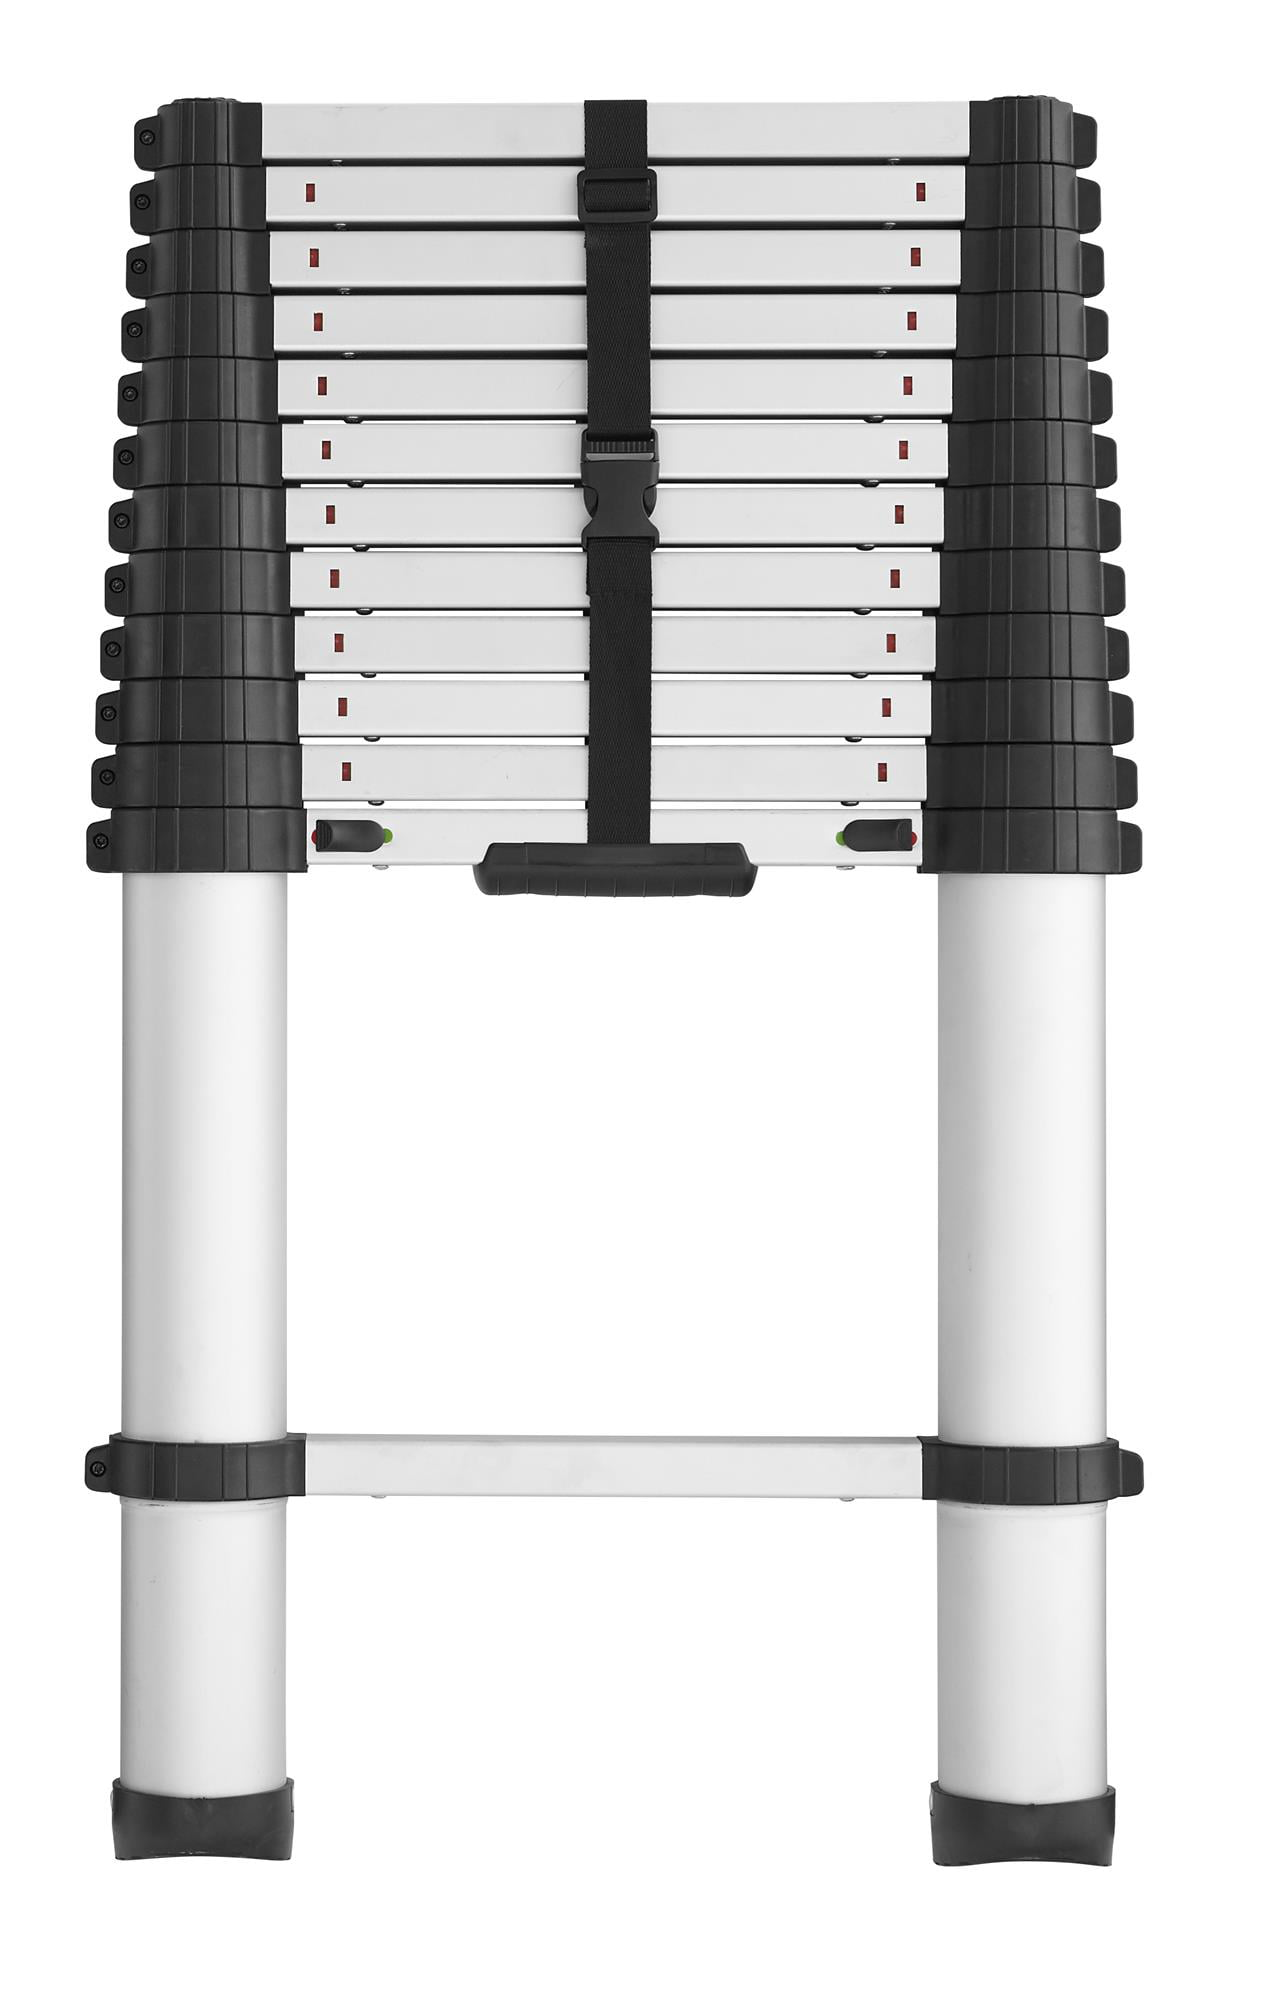 COSCO SmartClose Telescoping Aluminum Ladder with Pinch-Free, Soft-Close Locking Mechanism... by Cosco